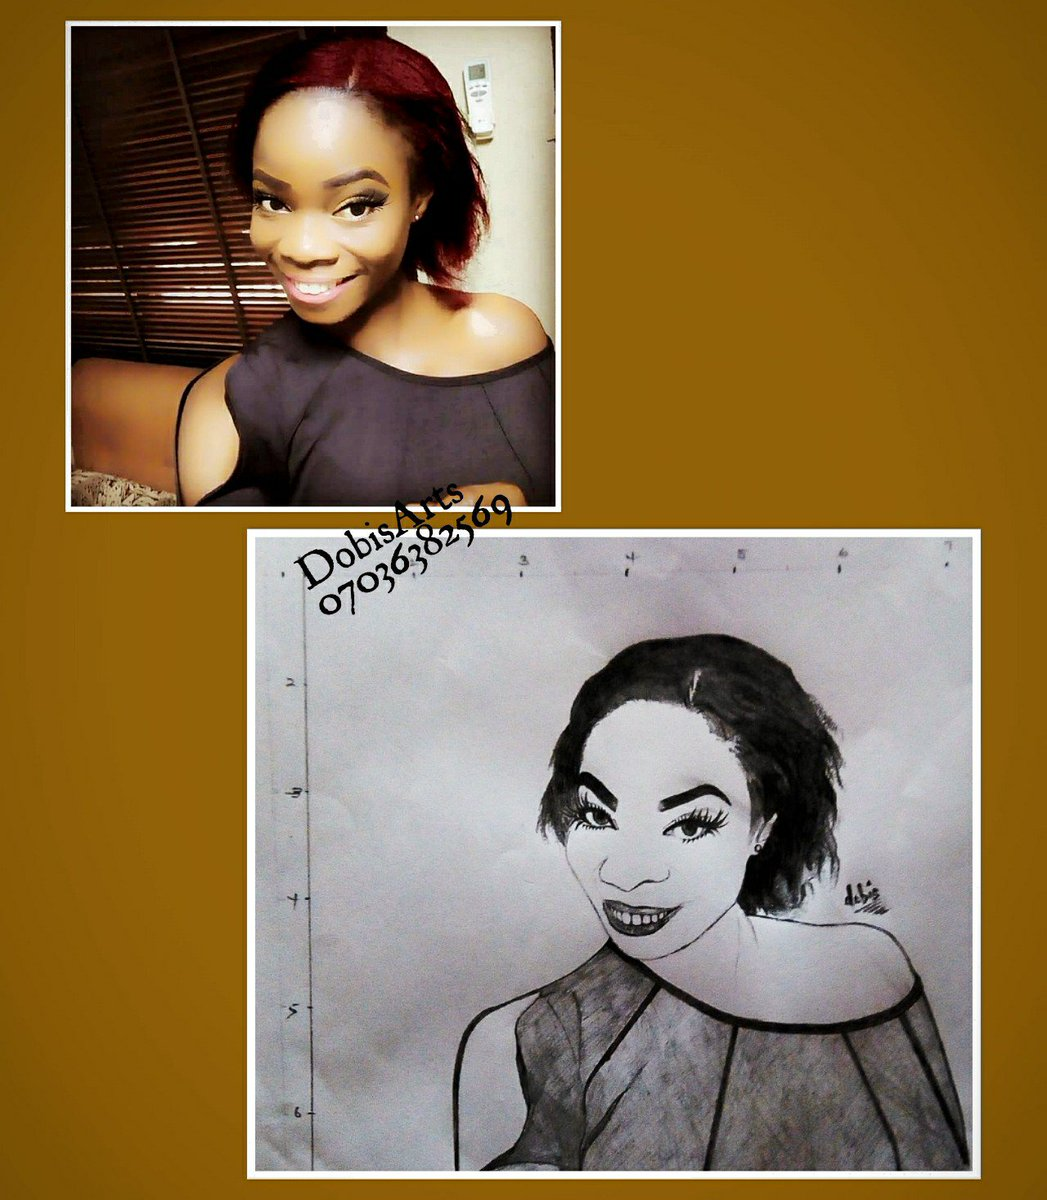 Took it back a Lil to my humble beginning  #throwbackdrawing #portraitchallenge #WeAreNigerianCreatives https://t.co/7U6Mq5iund